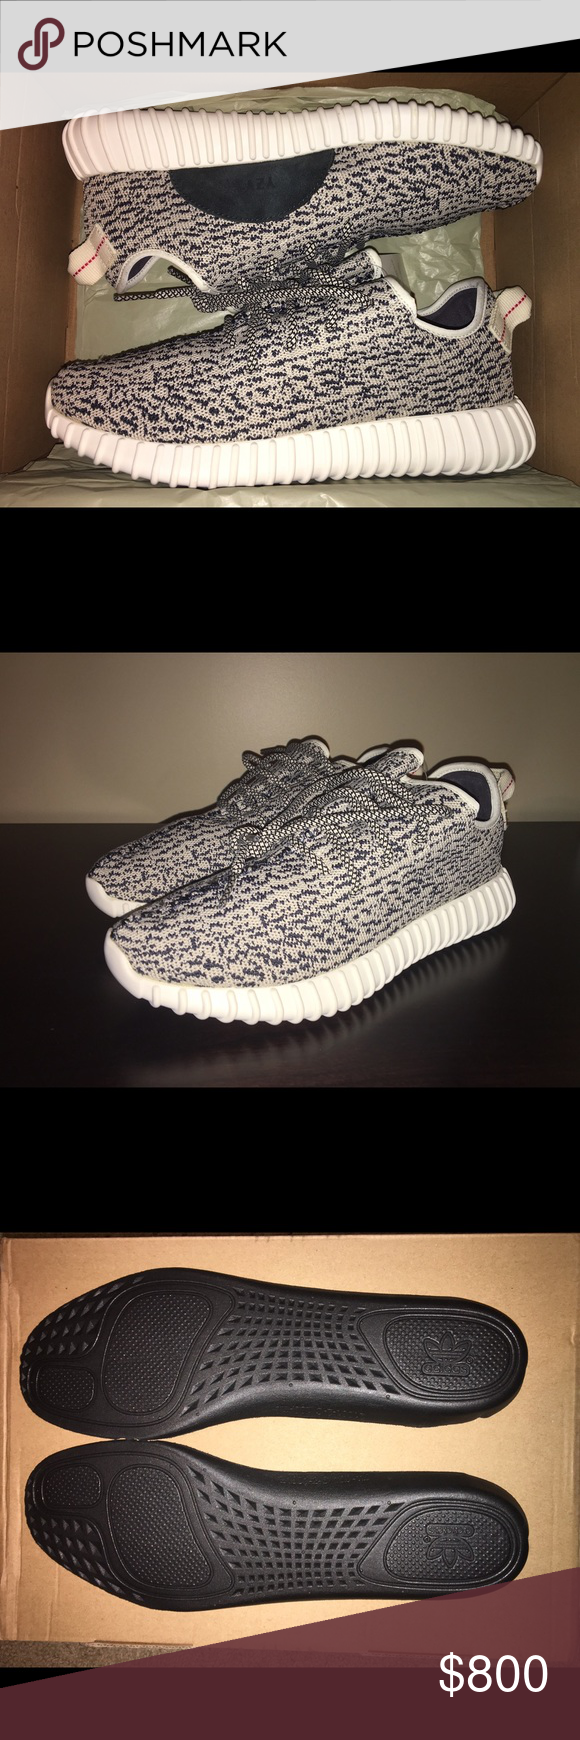 eeb12b04db33 Authentic Adidas Yeezy Boost 350 Turtle Dove Brand new in box! Size 10 with  original